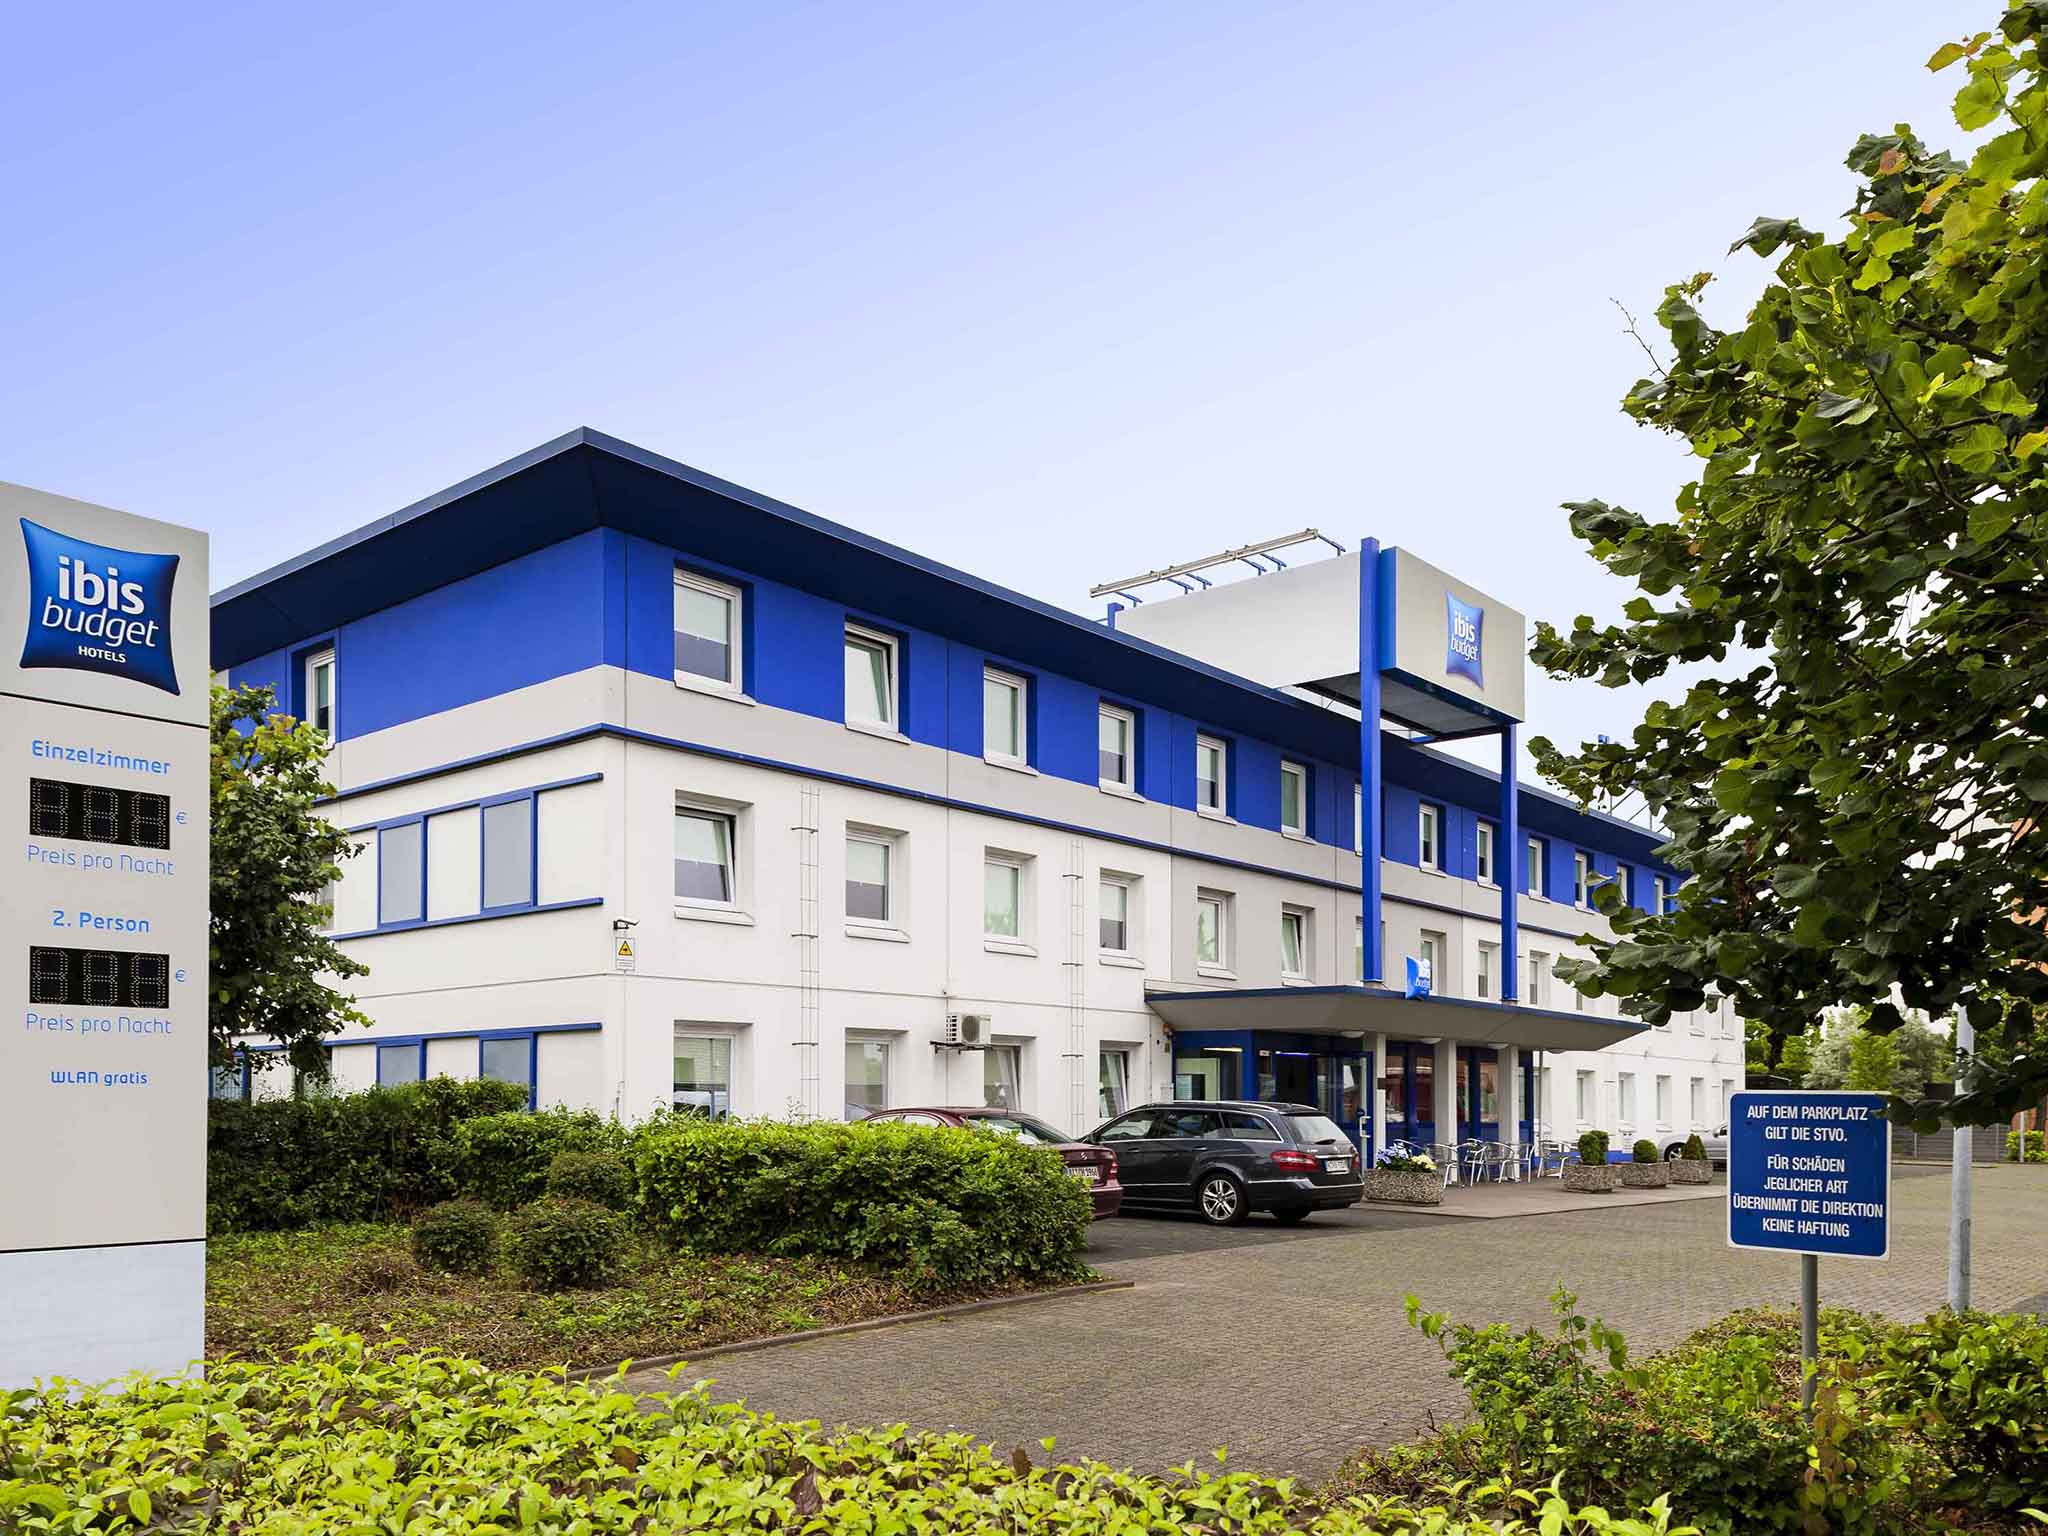 Hotel Ibis Budget Cologne Marsdorf Book Online Now